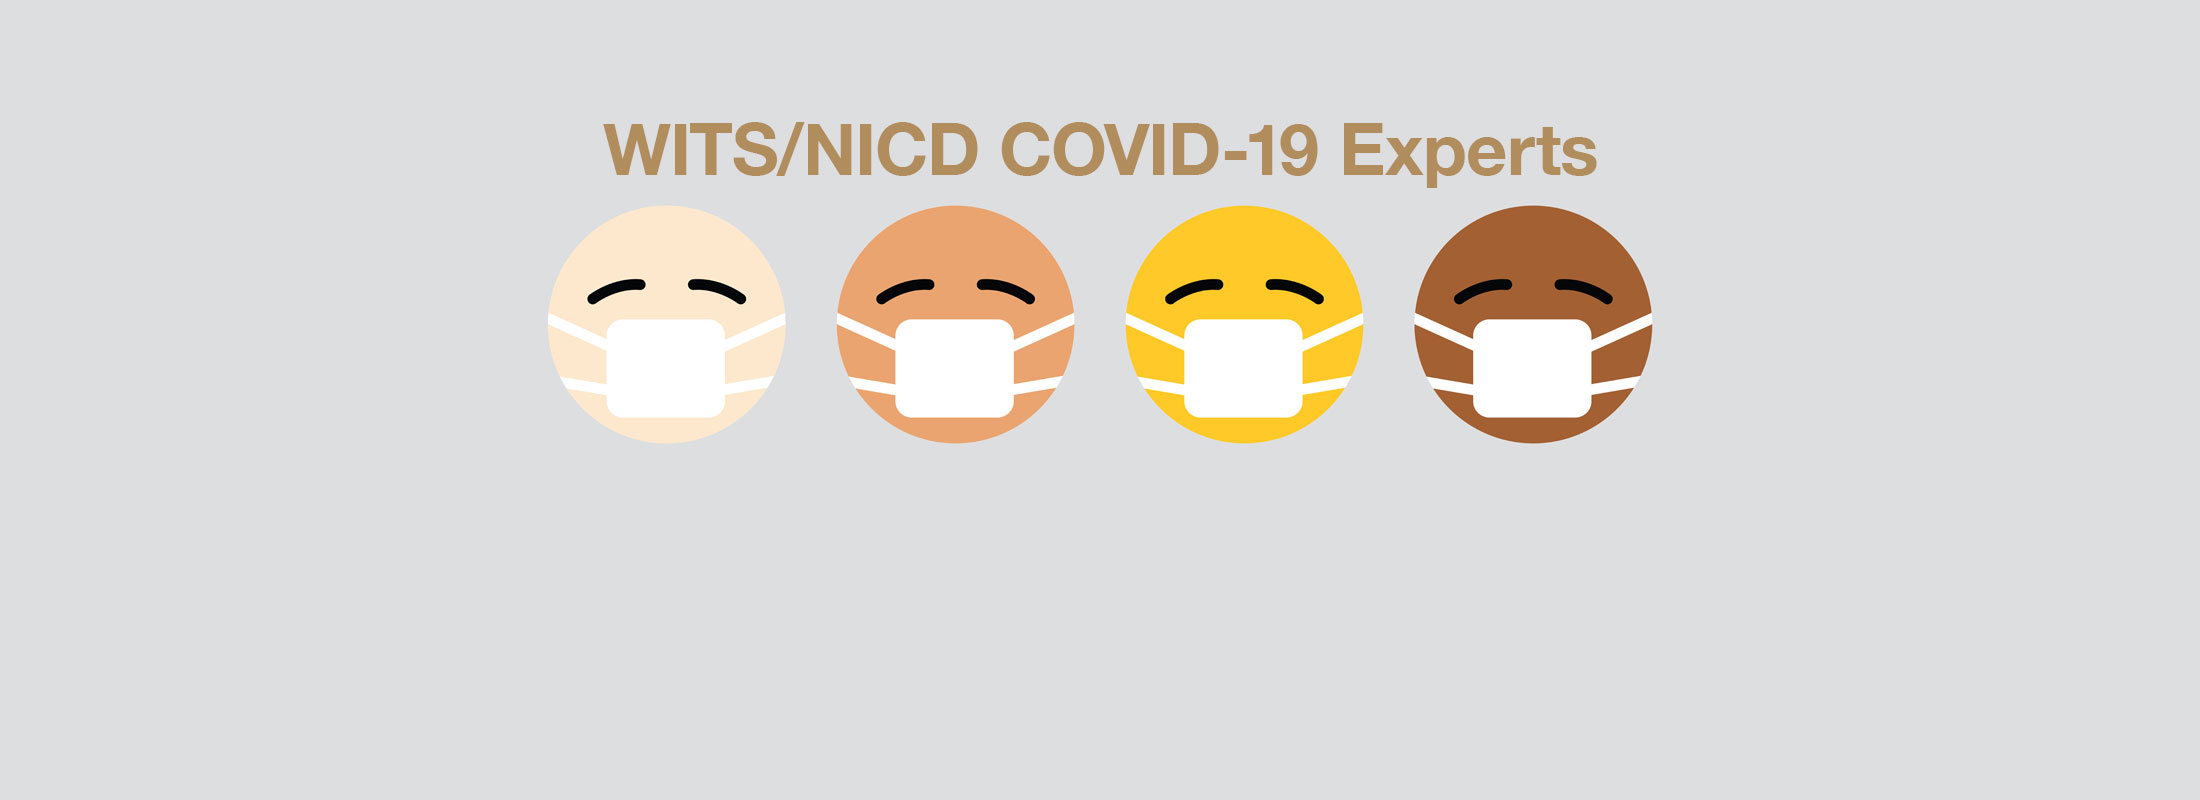 COVID-19 Wits and Wits/NICD experts